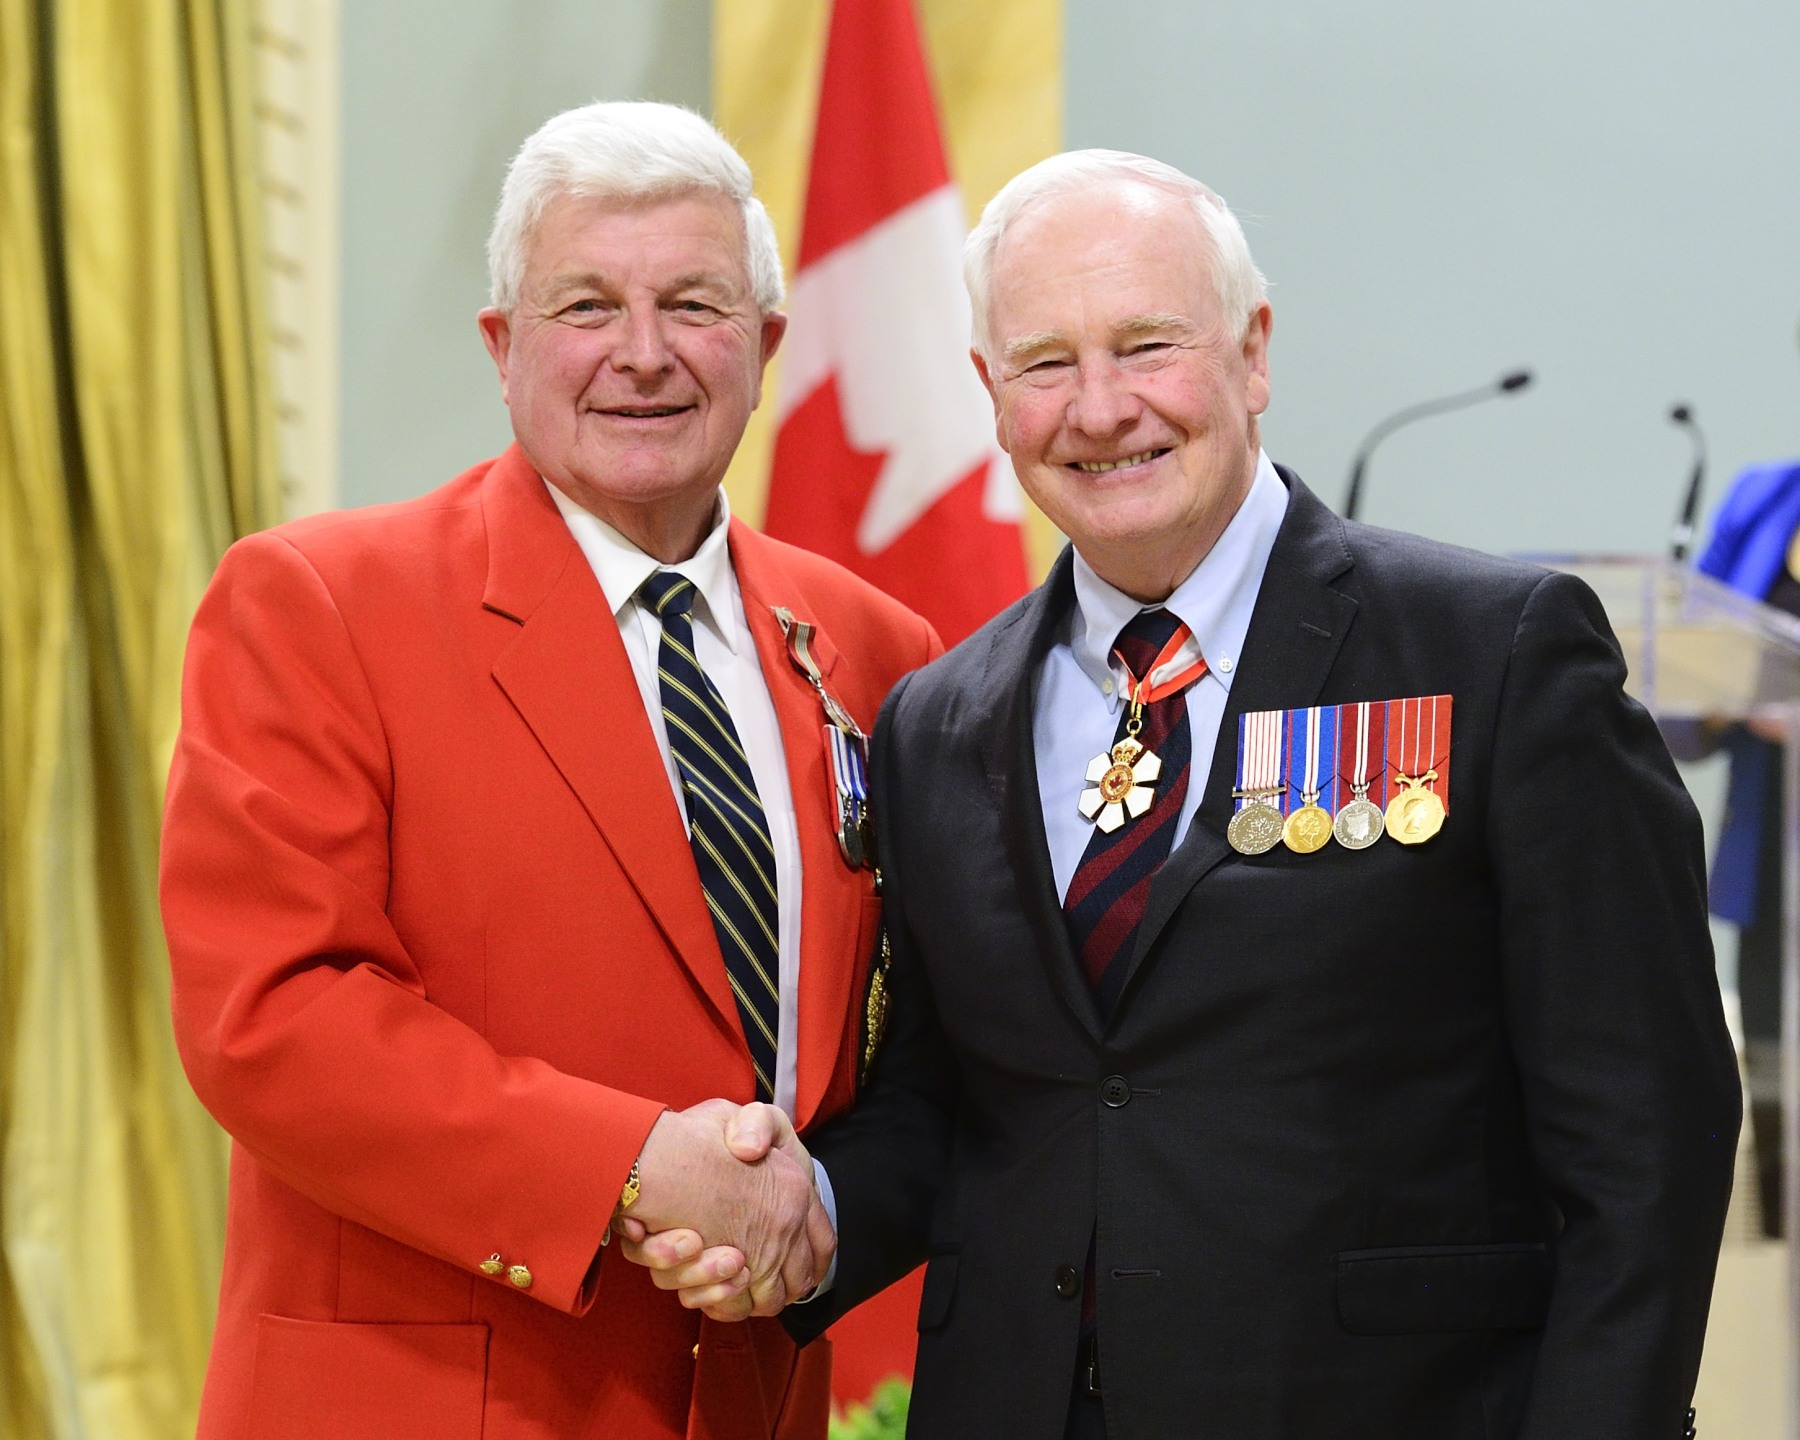 For over 50 years, Sergeant Garth Hampson (Ottawa, Ontario) has been a community leader, providing his voice and musical talents to such organizations as the Children's Hospital of Eastern Ontario, the RCMP Charity Ball and the Duke of Edinburgh's International Award, in addition to other community-building initiatives. His efforts have facilitated bridge-building with Aboriginal peoples throughout Canada and have supported many valuable charities and programs.